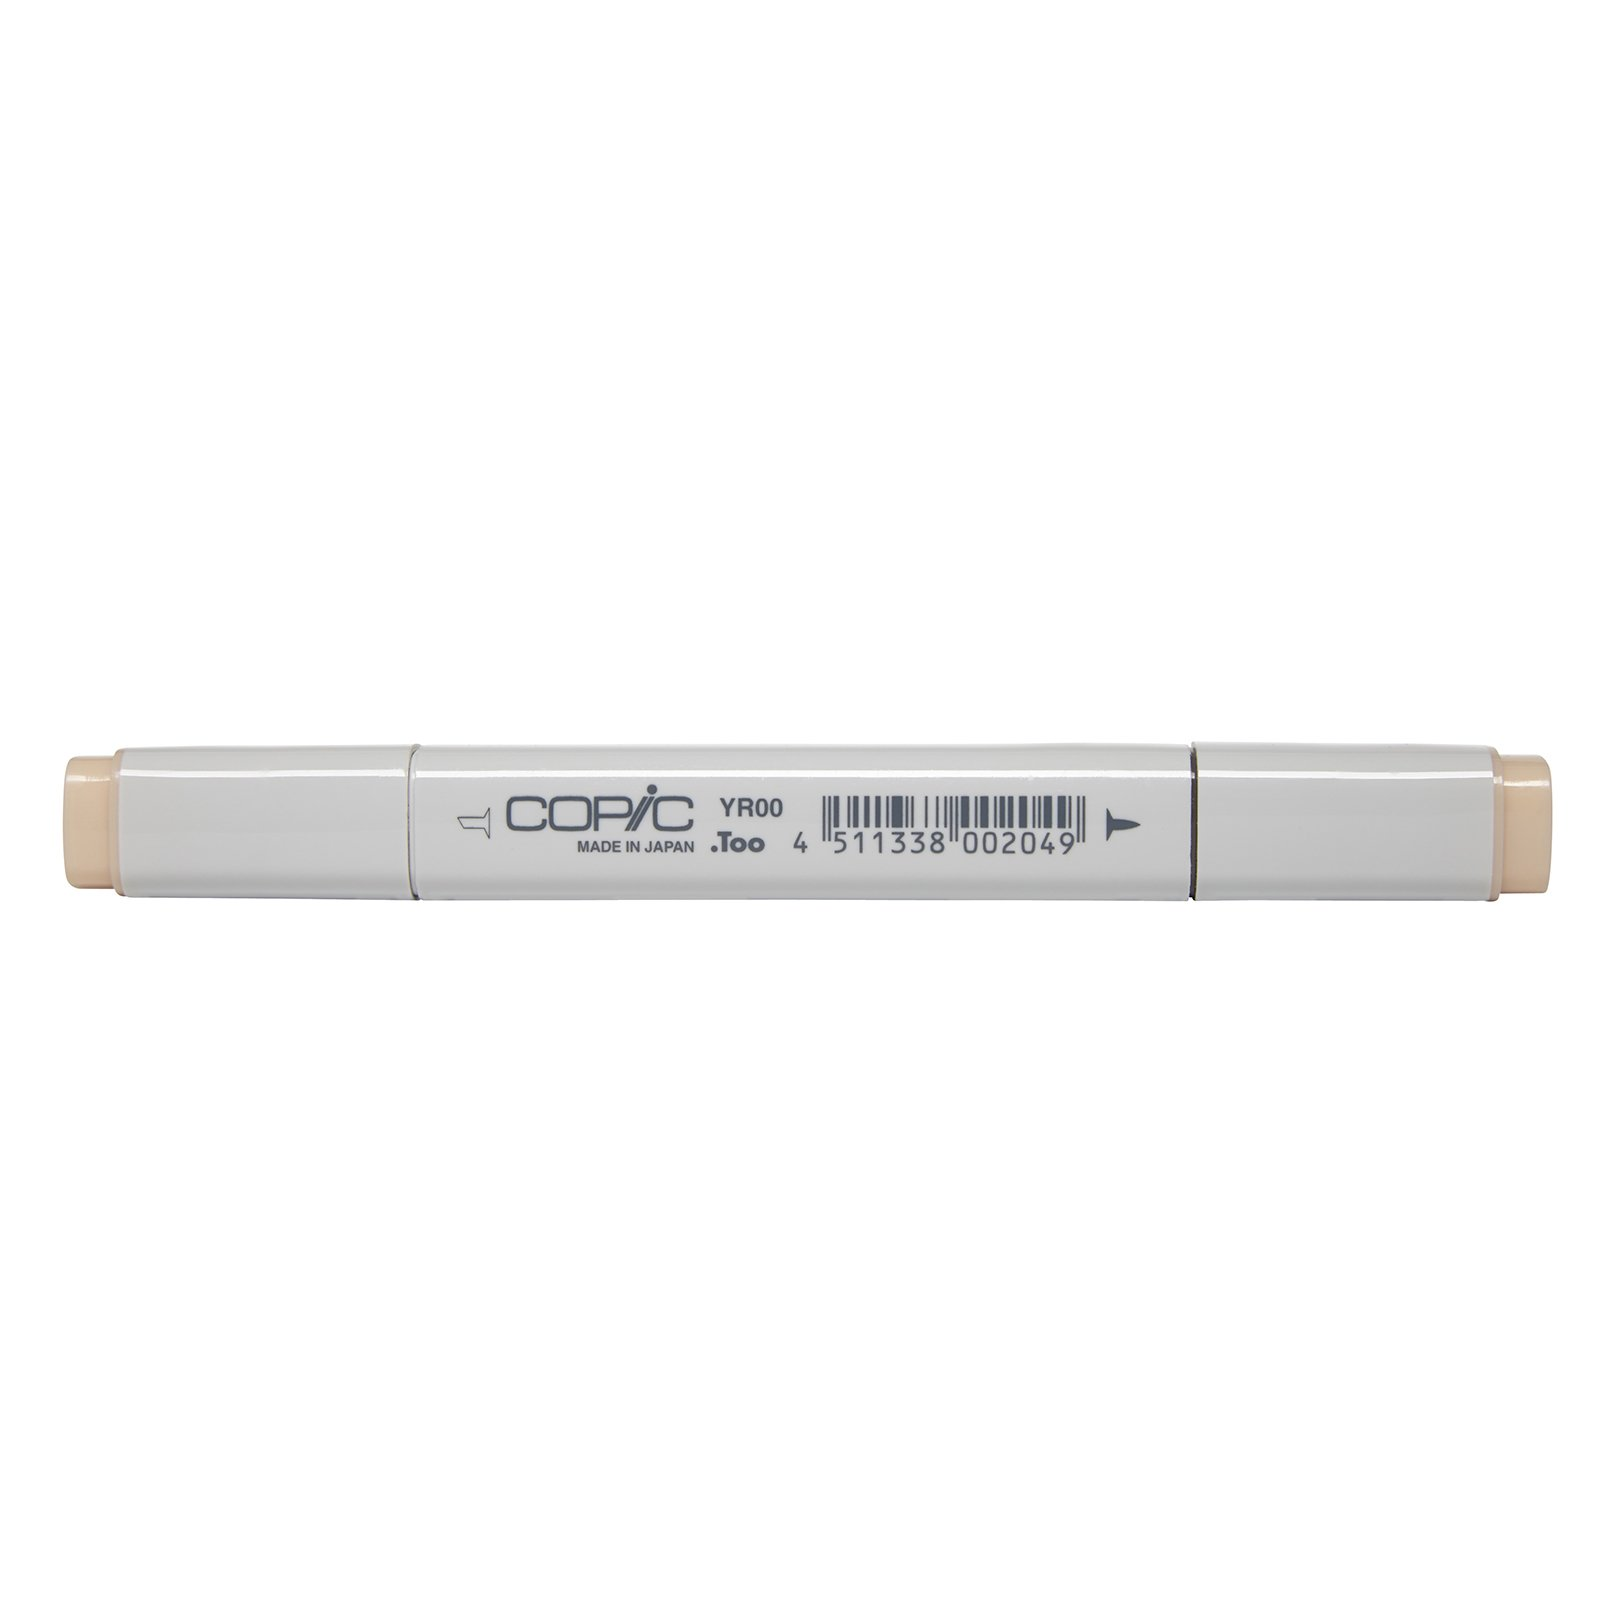 Copic Marker with Replaceable Nib, YR00-Copic, Powder Pink